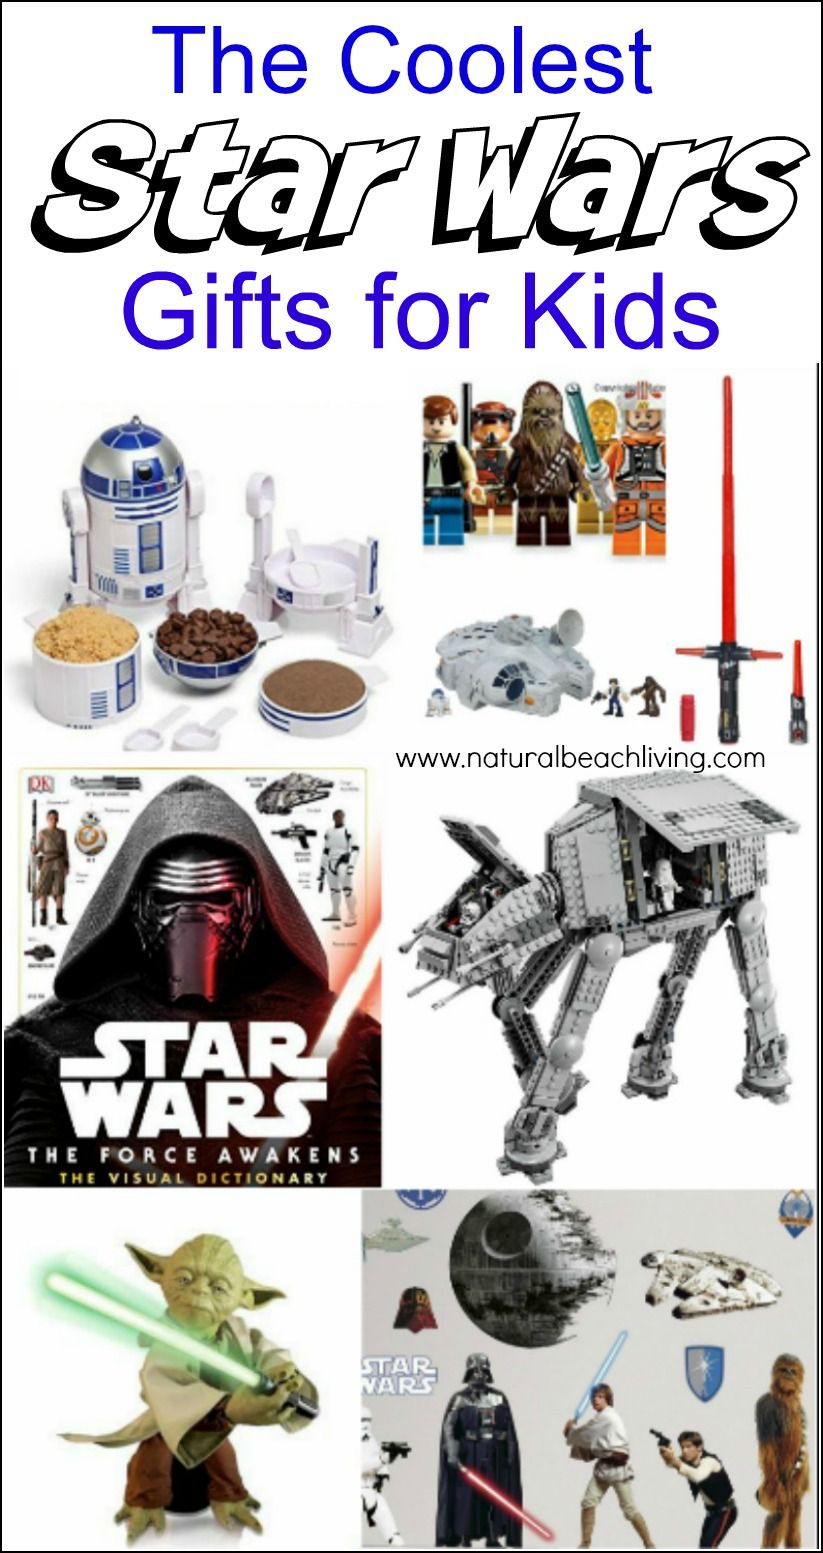 19+ Star wars crafts for adults ideas in 2021